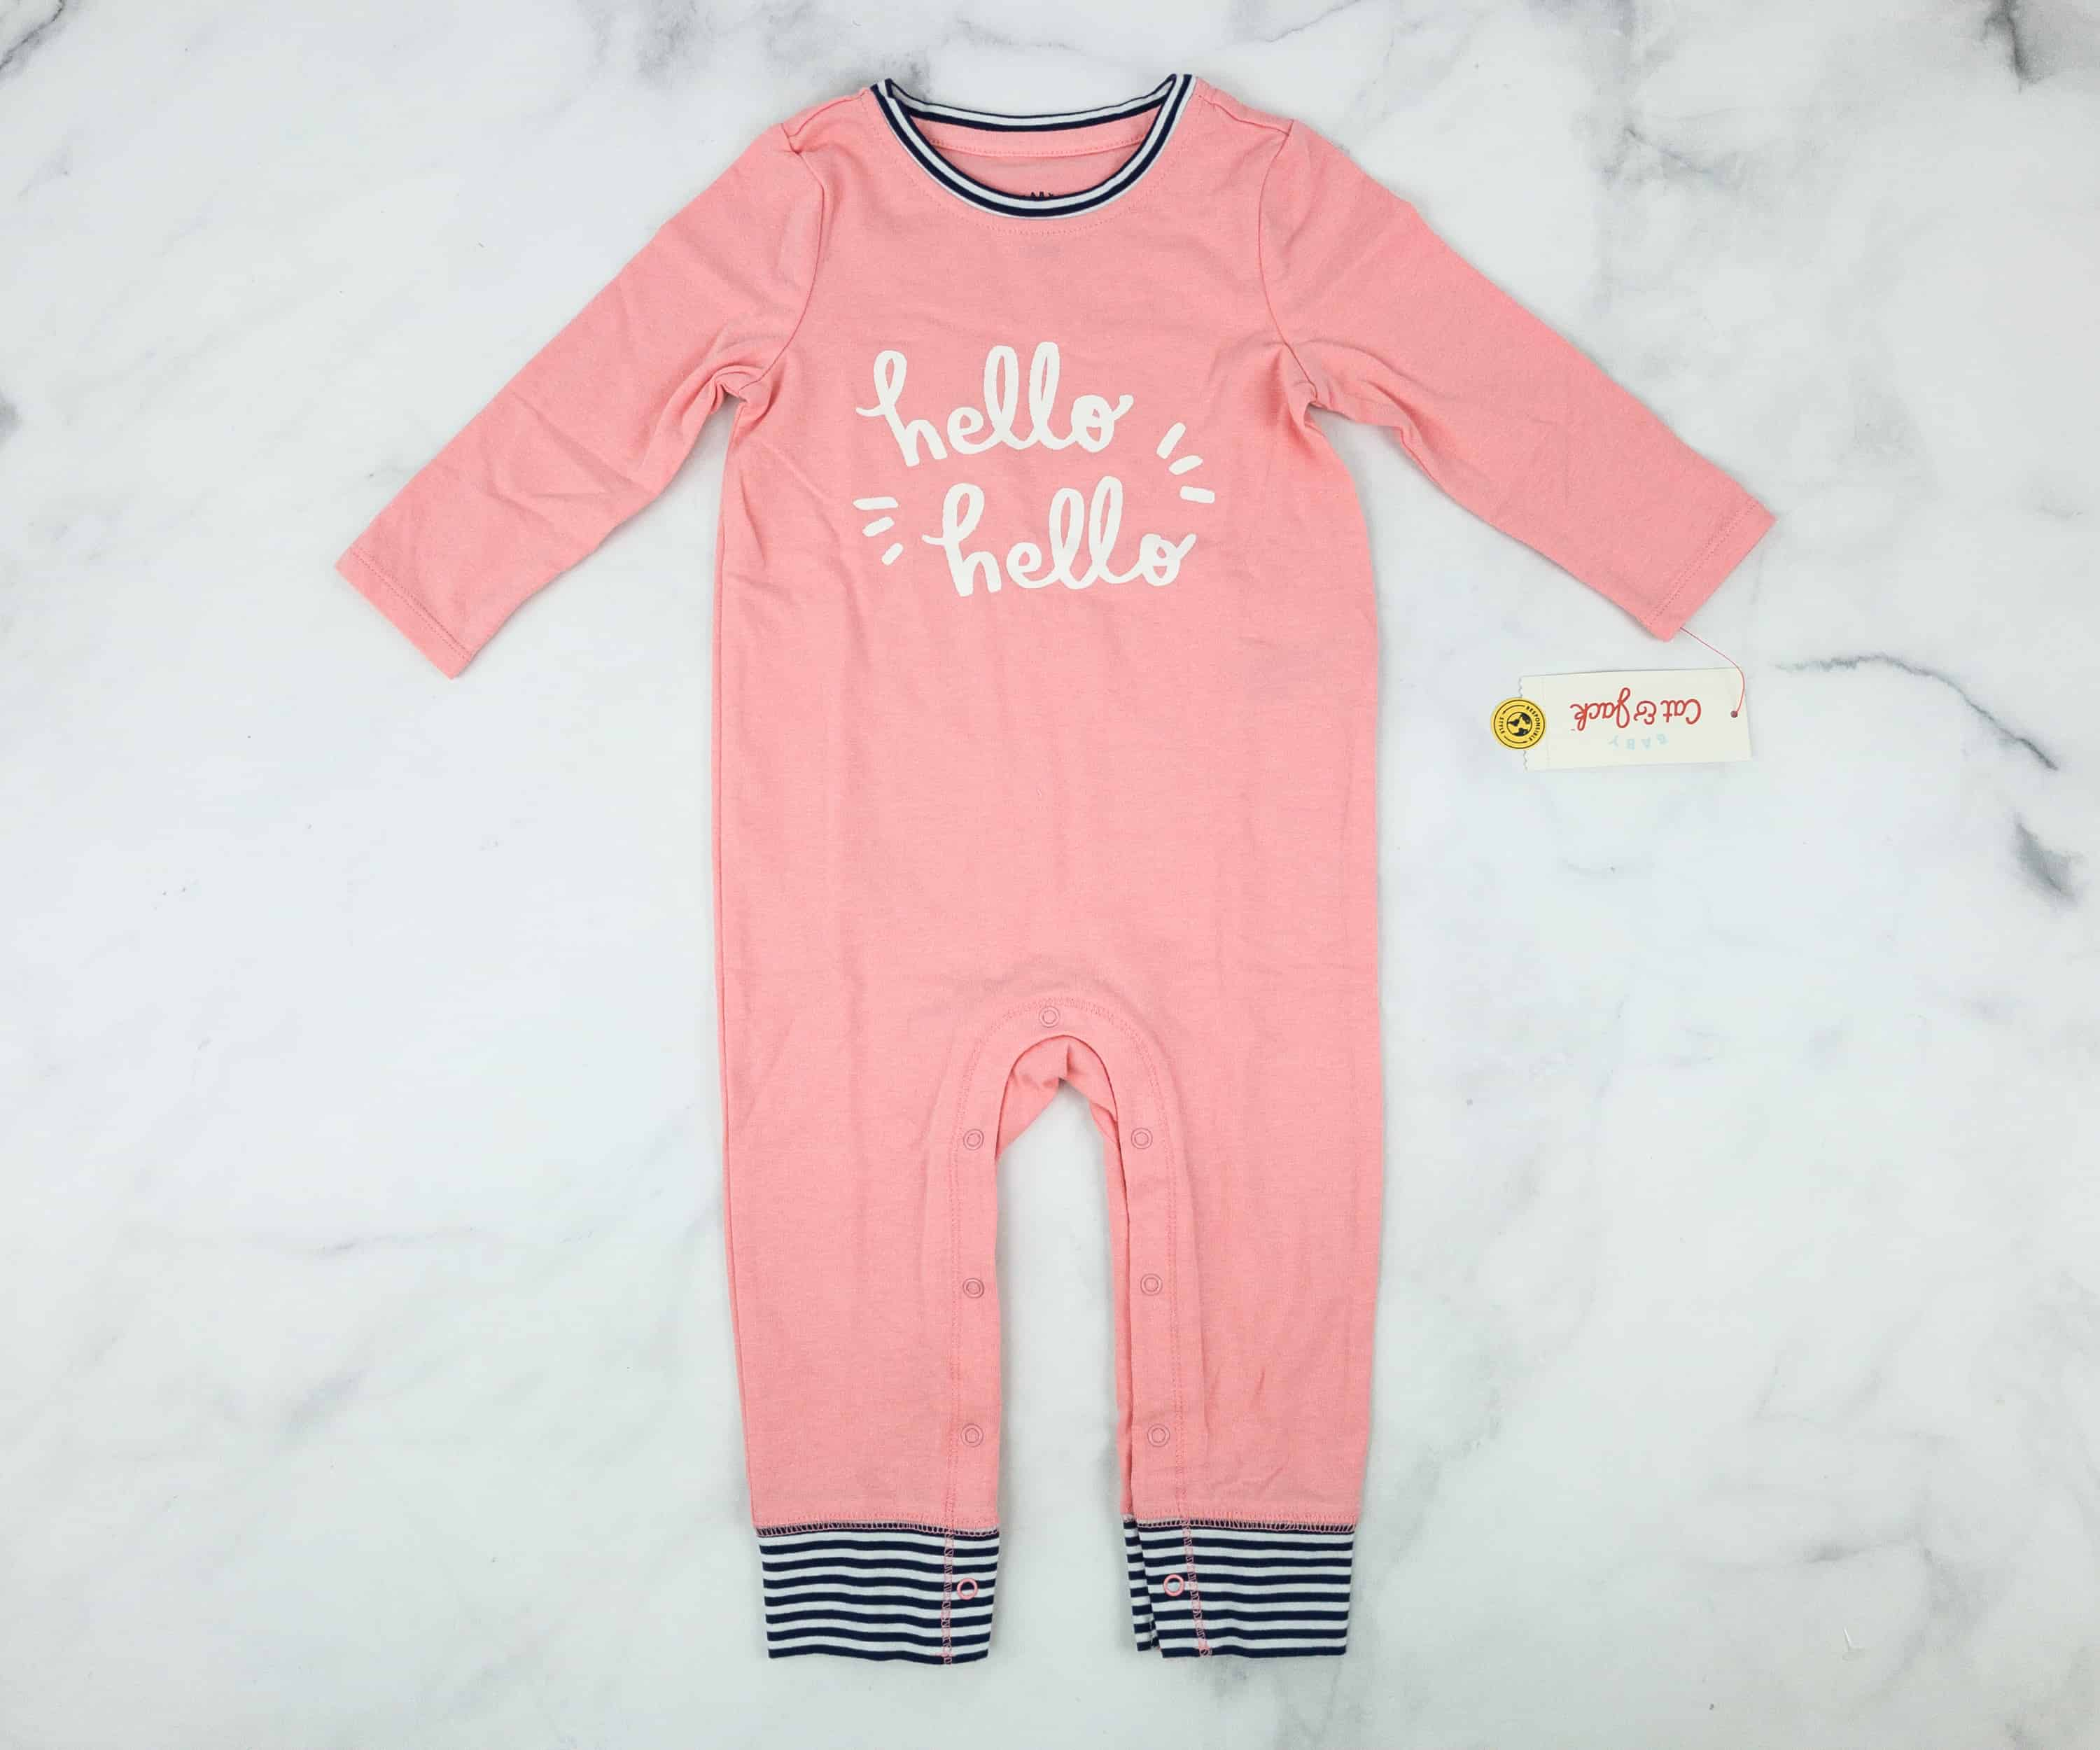 7948ec241 Cat & Jack Baby Girl's Hello Hello One-Piece. There's another one-piece  suit in this box! It has three fourth sleeves and long pants which is  perfect for ...